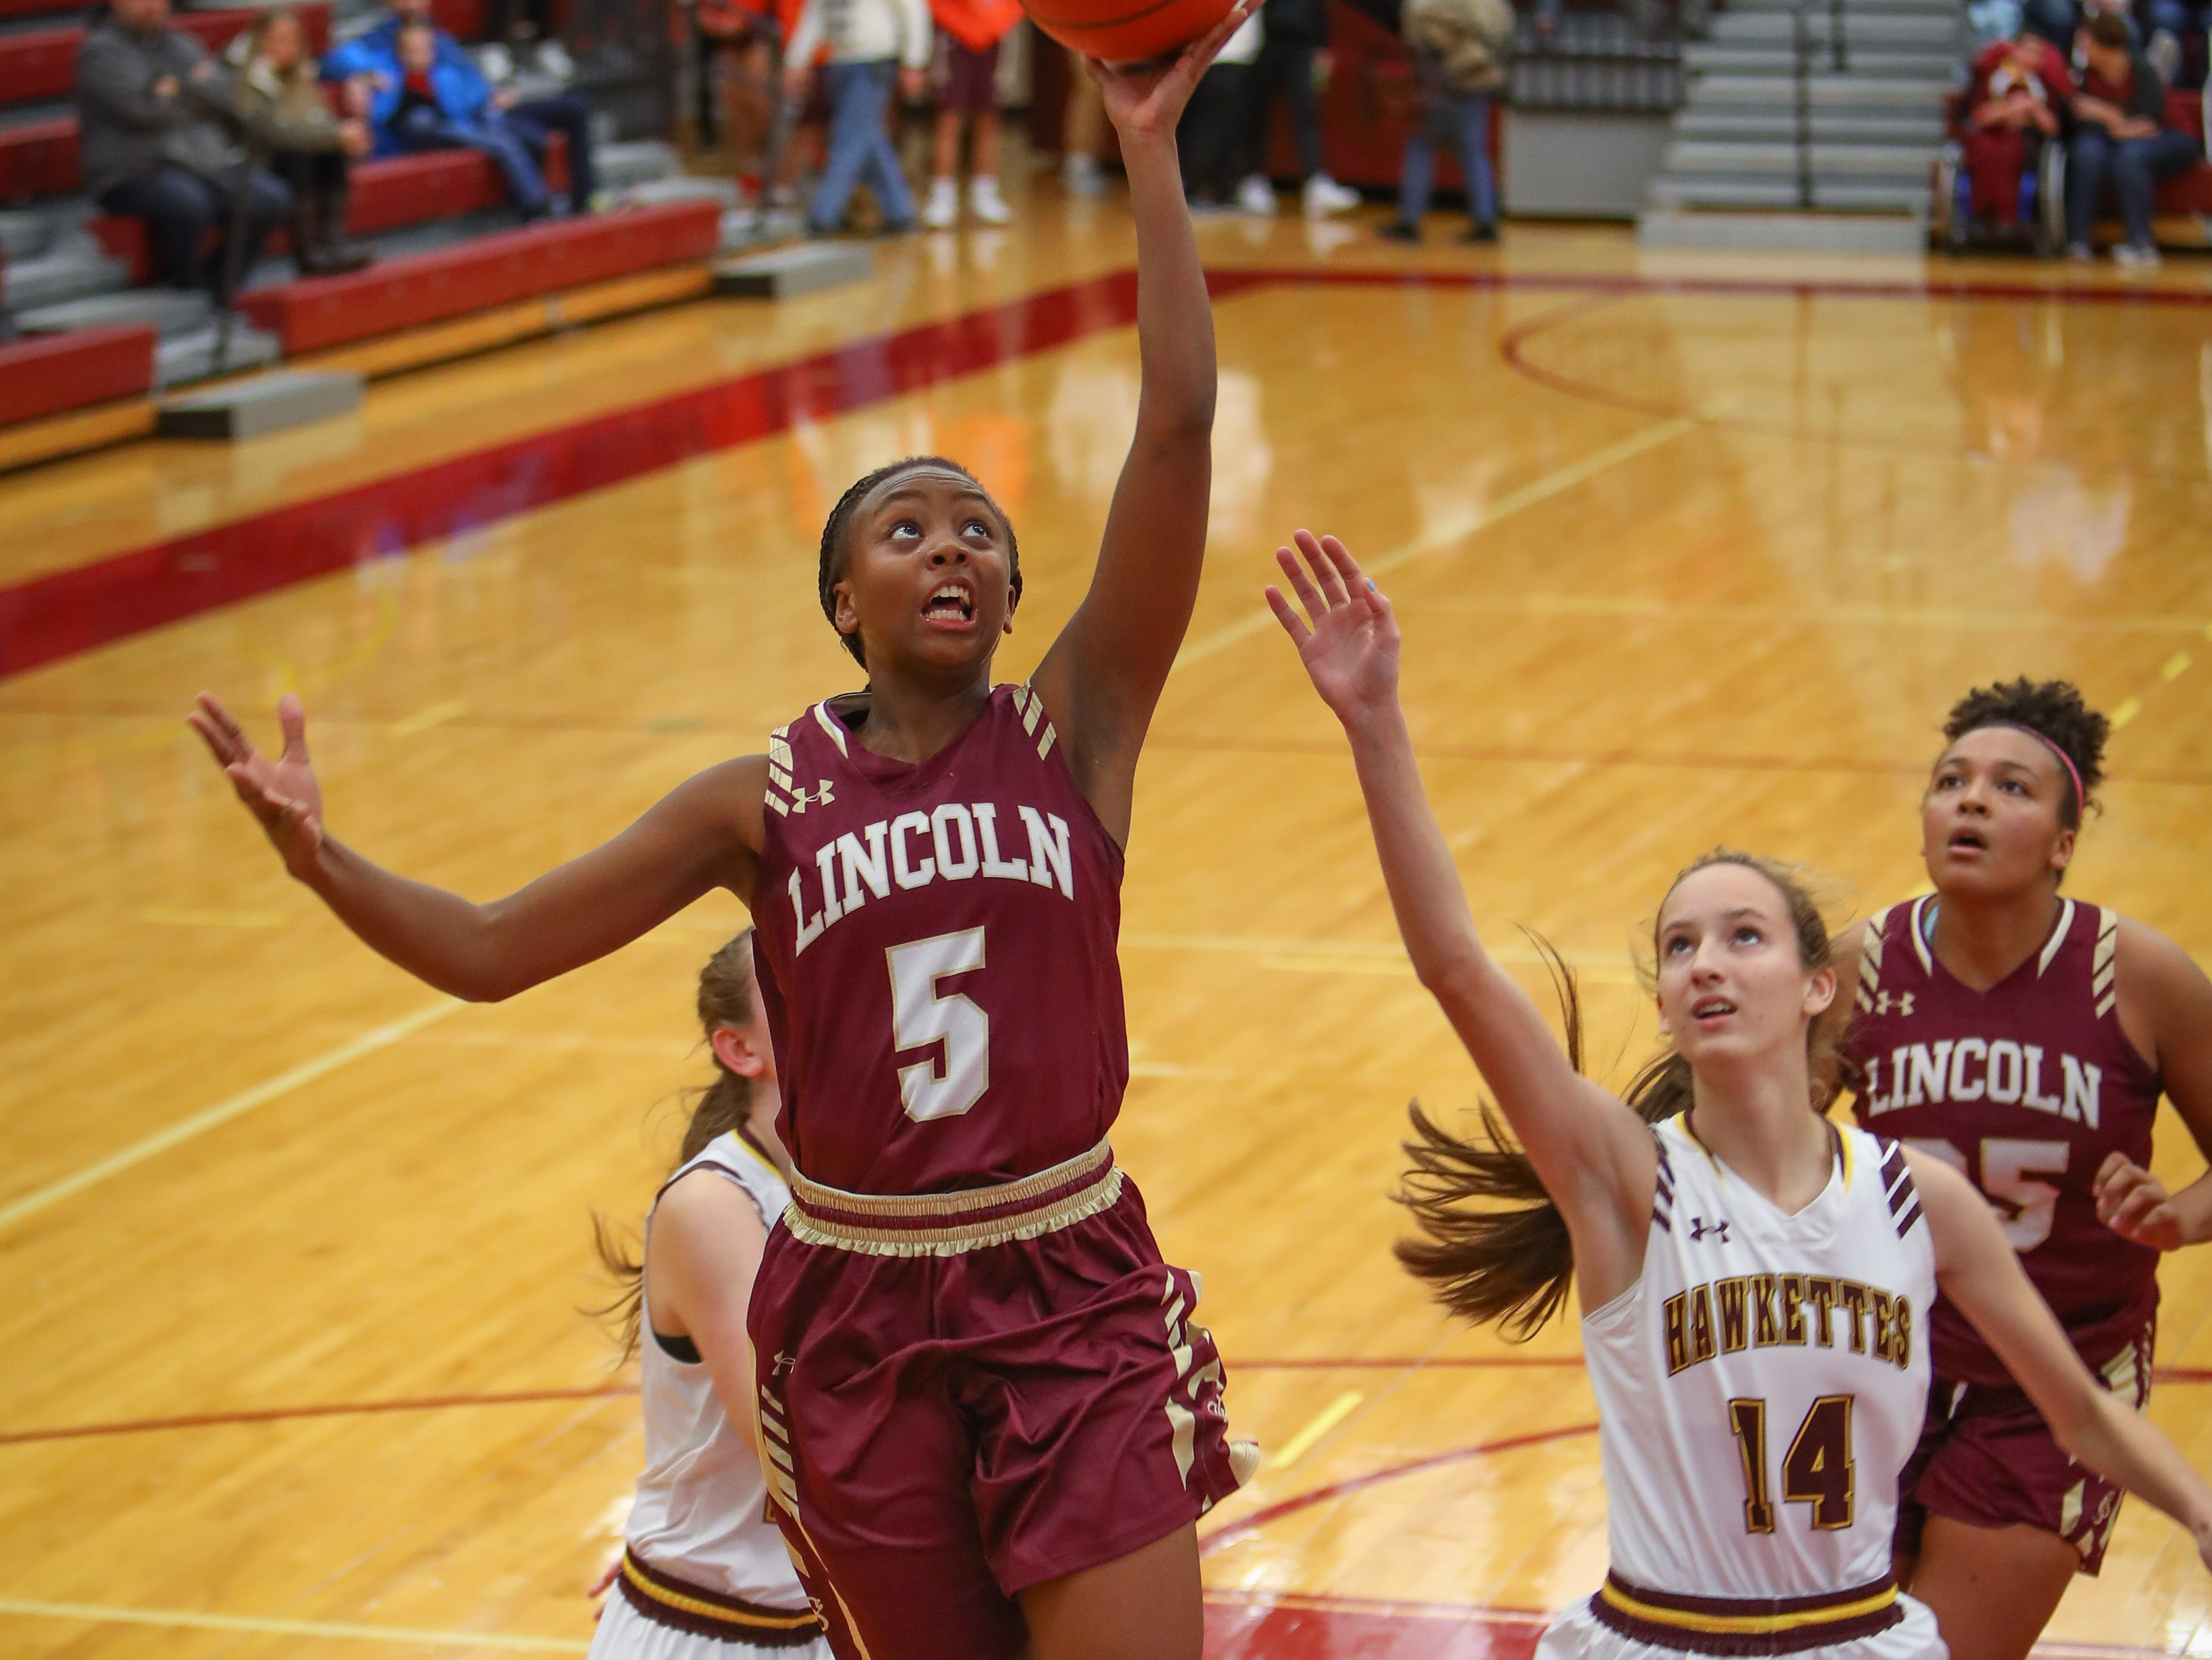 Lincoln freshman Trinity Cheatom goes for a lay-up during a girls high school basketball game between the Lincoln Railsplitters and the Ankeny Hawks at Ankeny High School on Dec. 4, 2018 in Ankeny, Iowa.